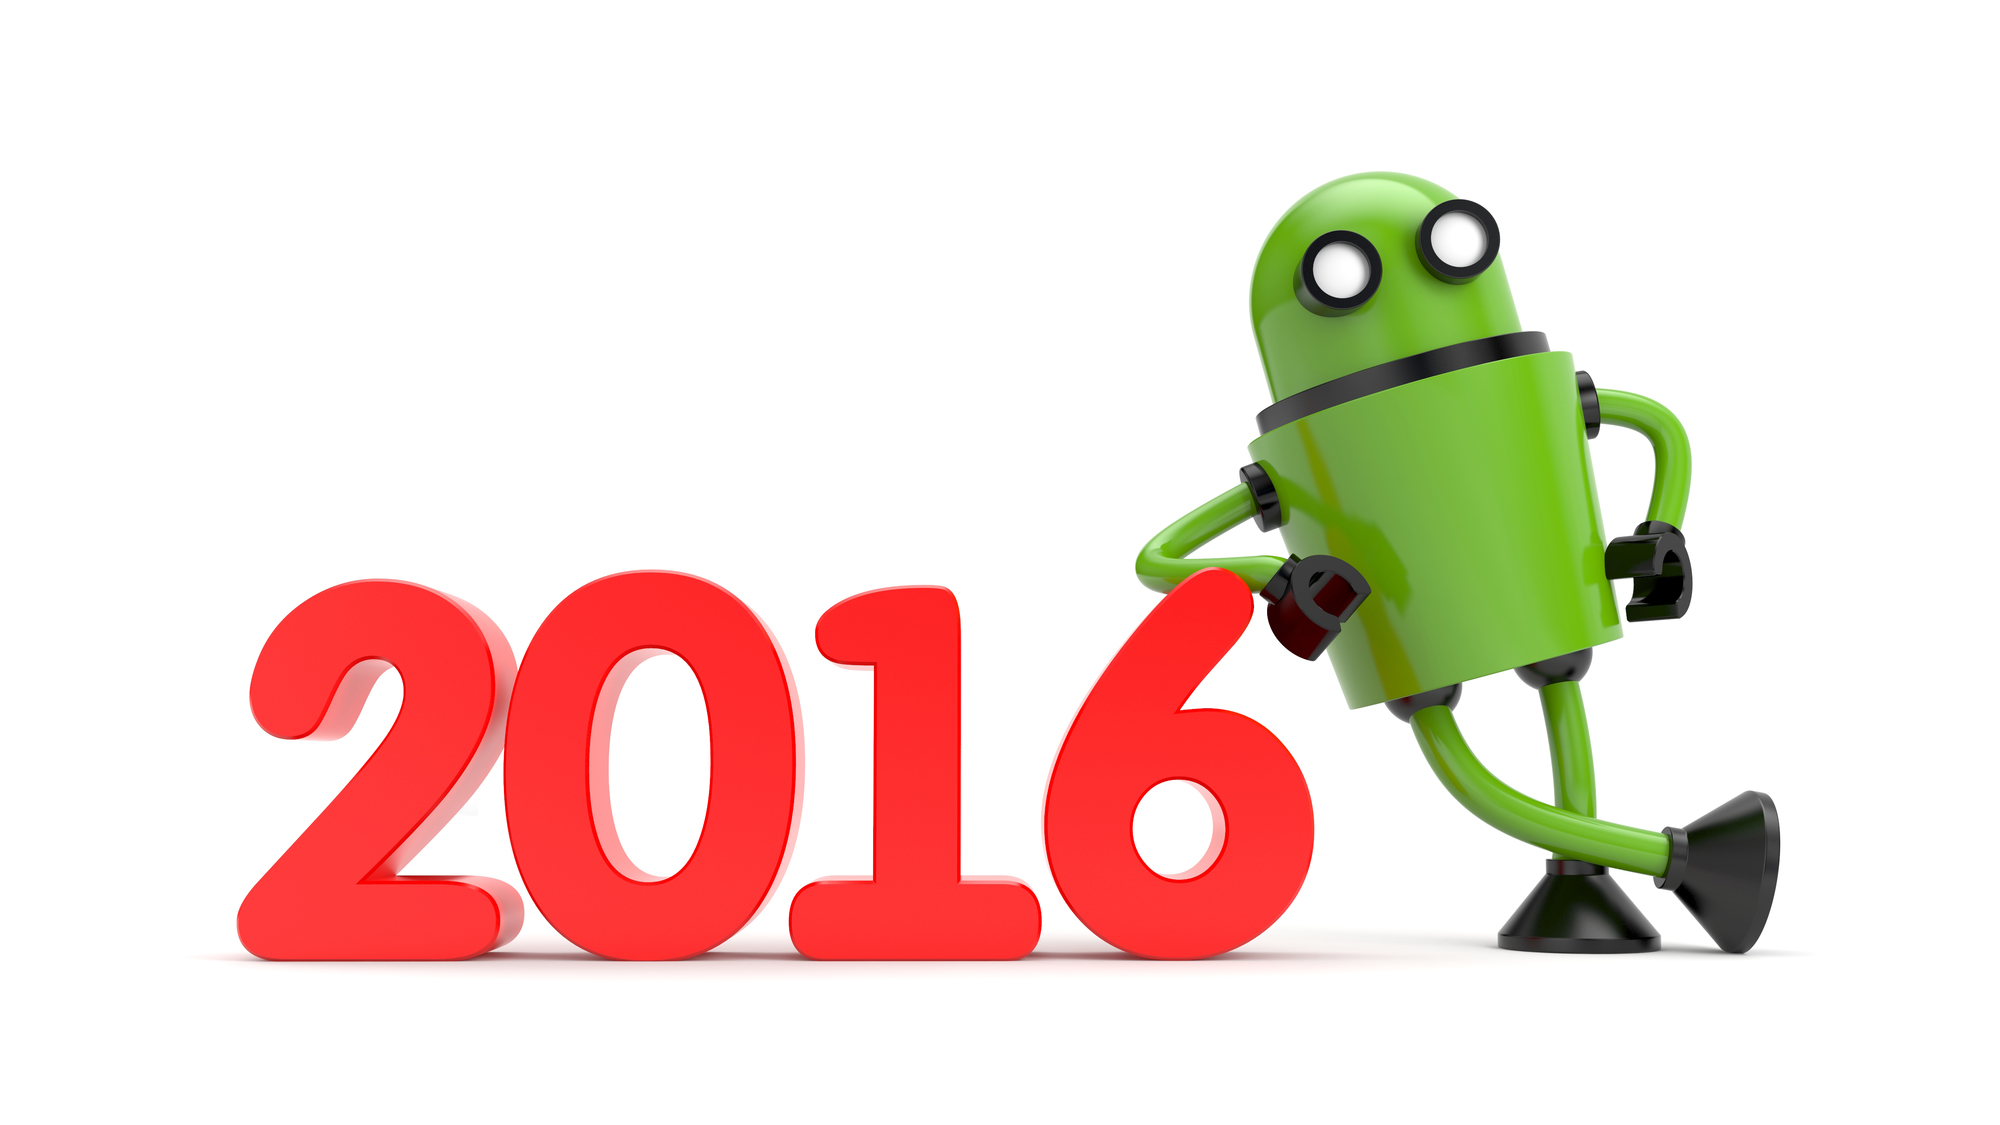 Green 3D Robot leaning on 2016